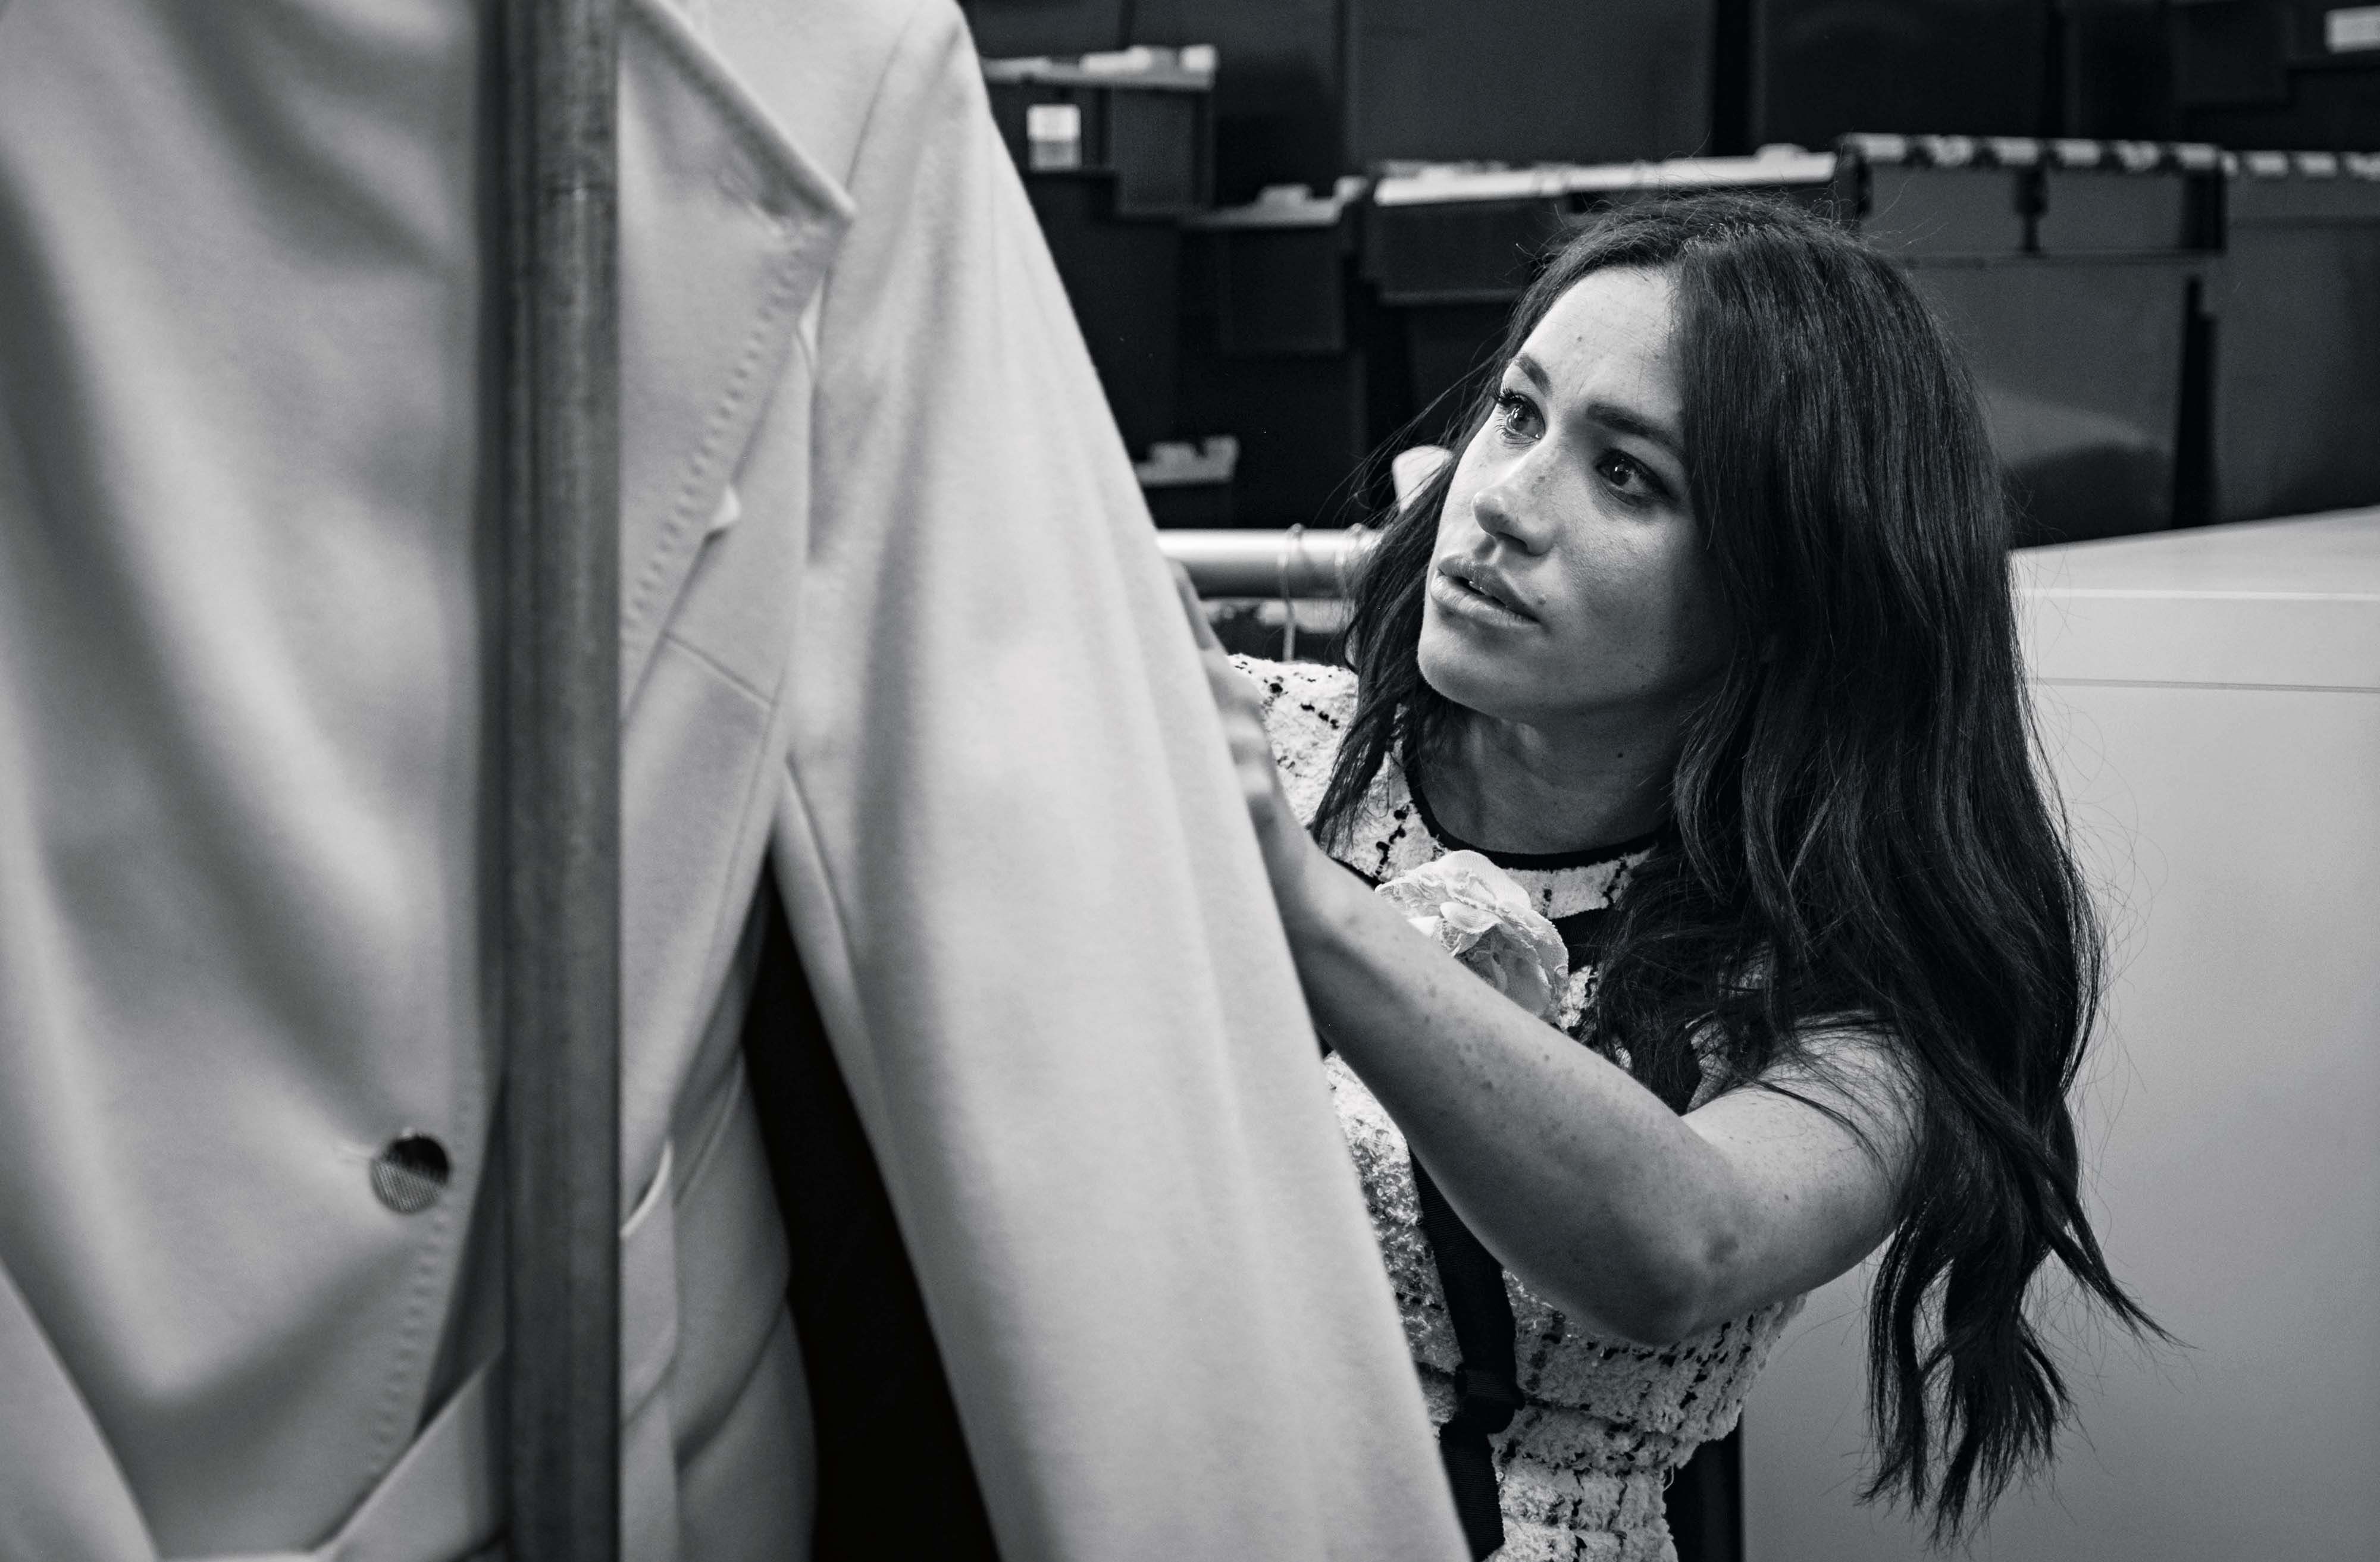 What Meghan Markle's Capsule Collection Might Include, Based on the Sneak Peek Video